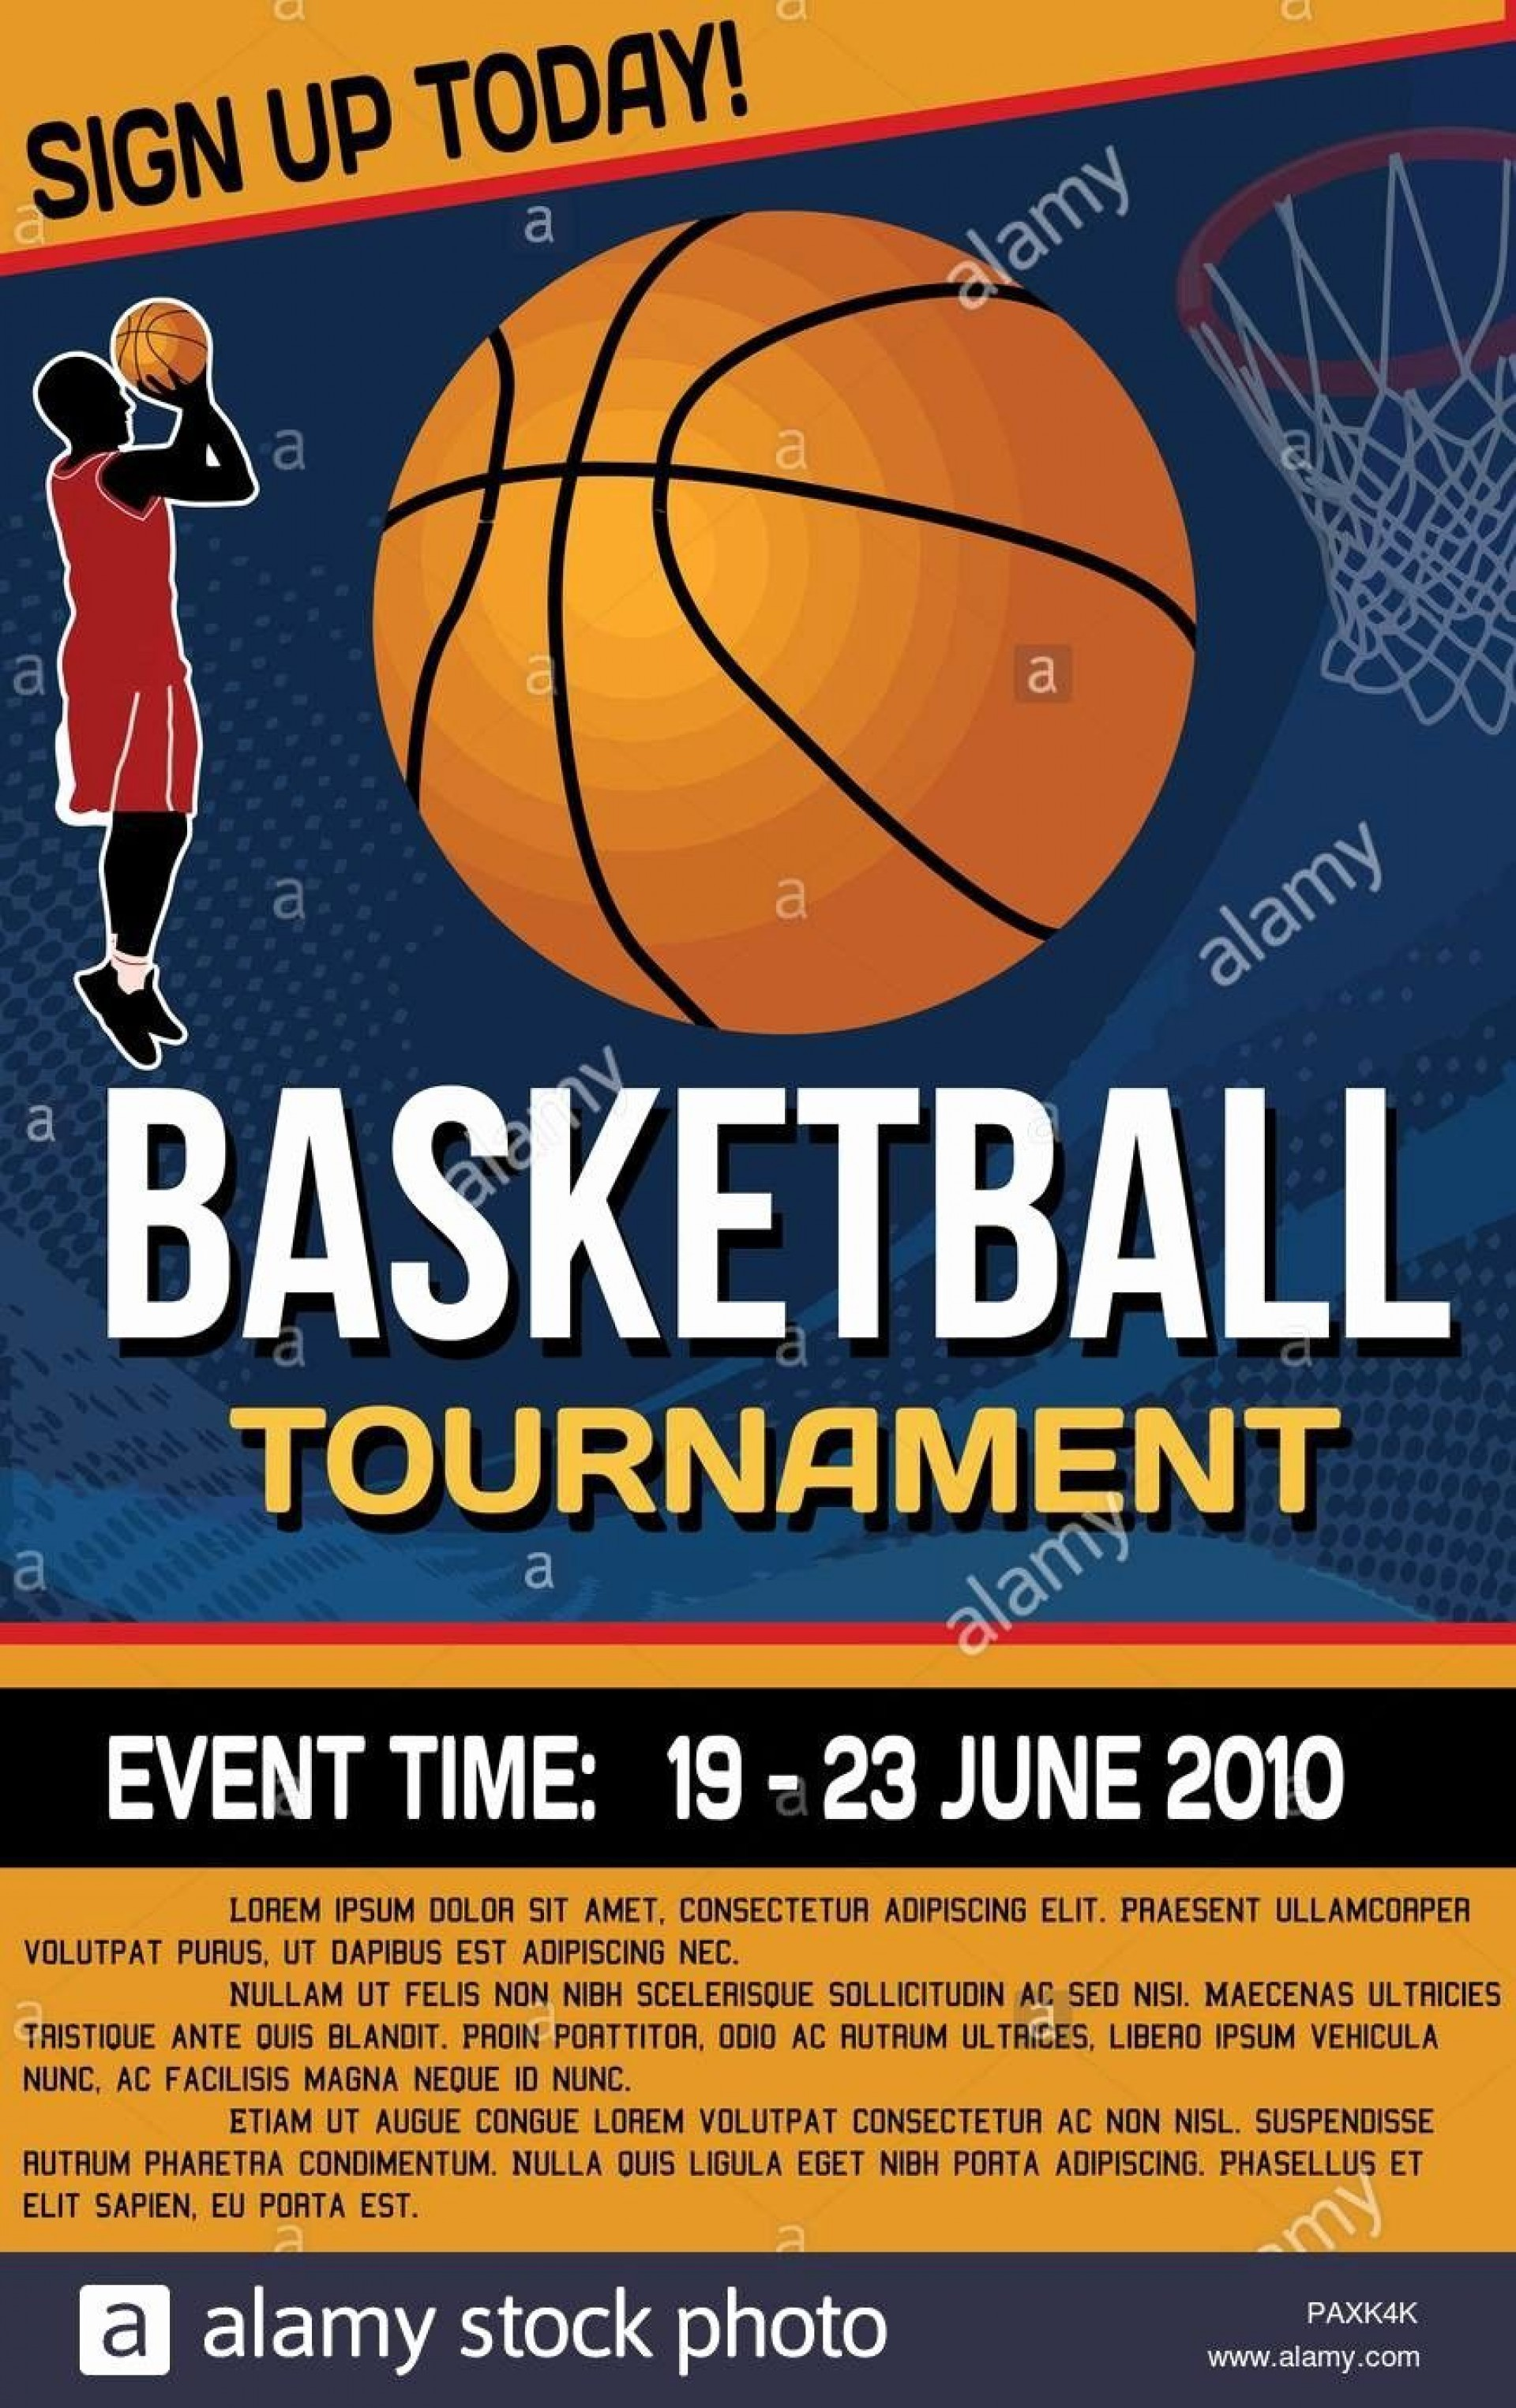 007 Fearsome Basketball Tournament Flyer Template Design  3 On Free1920